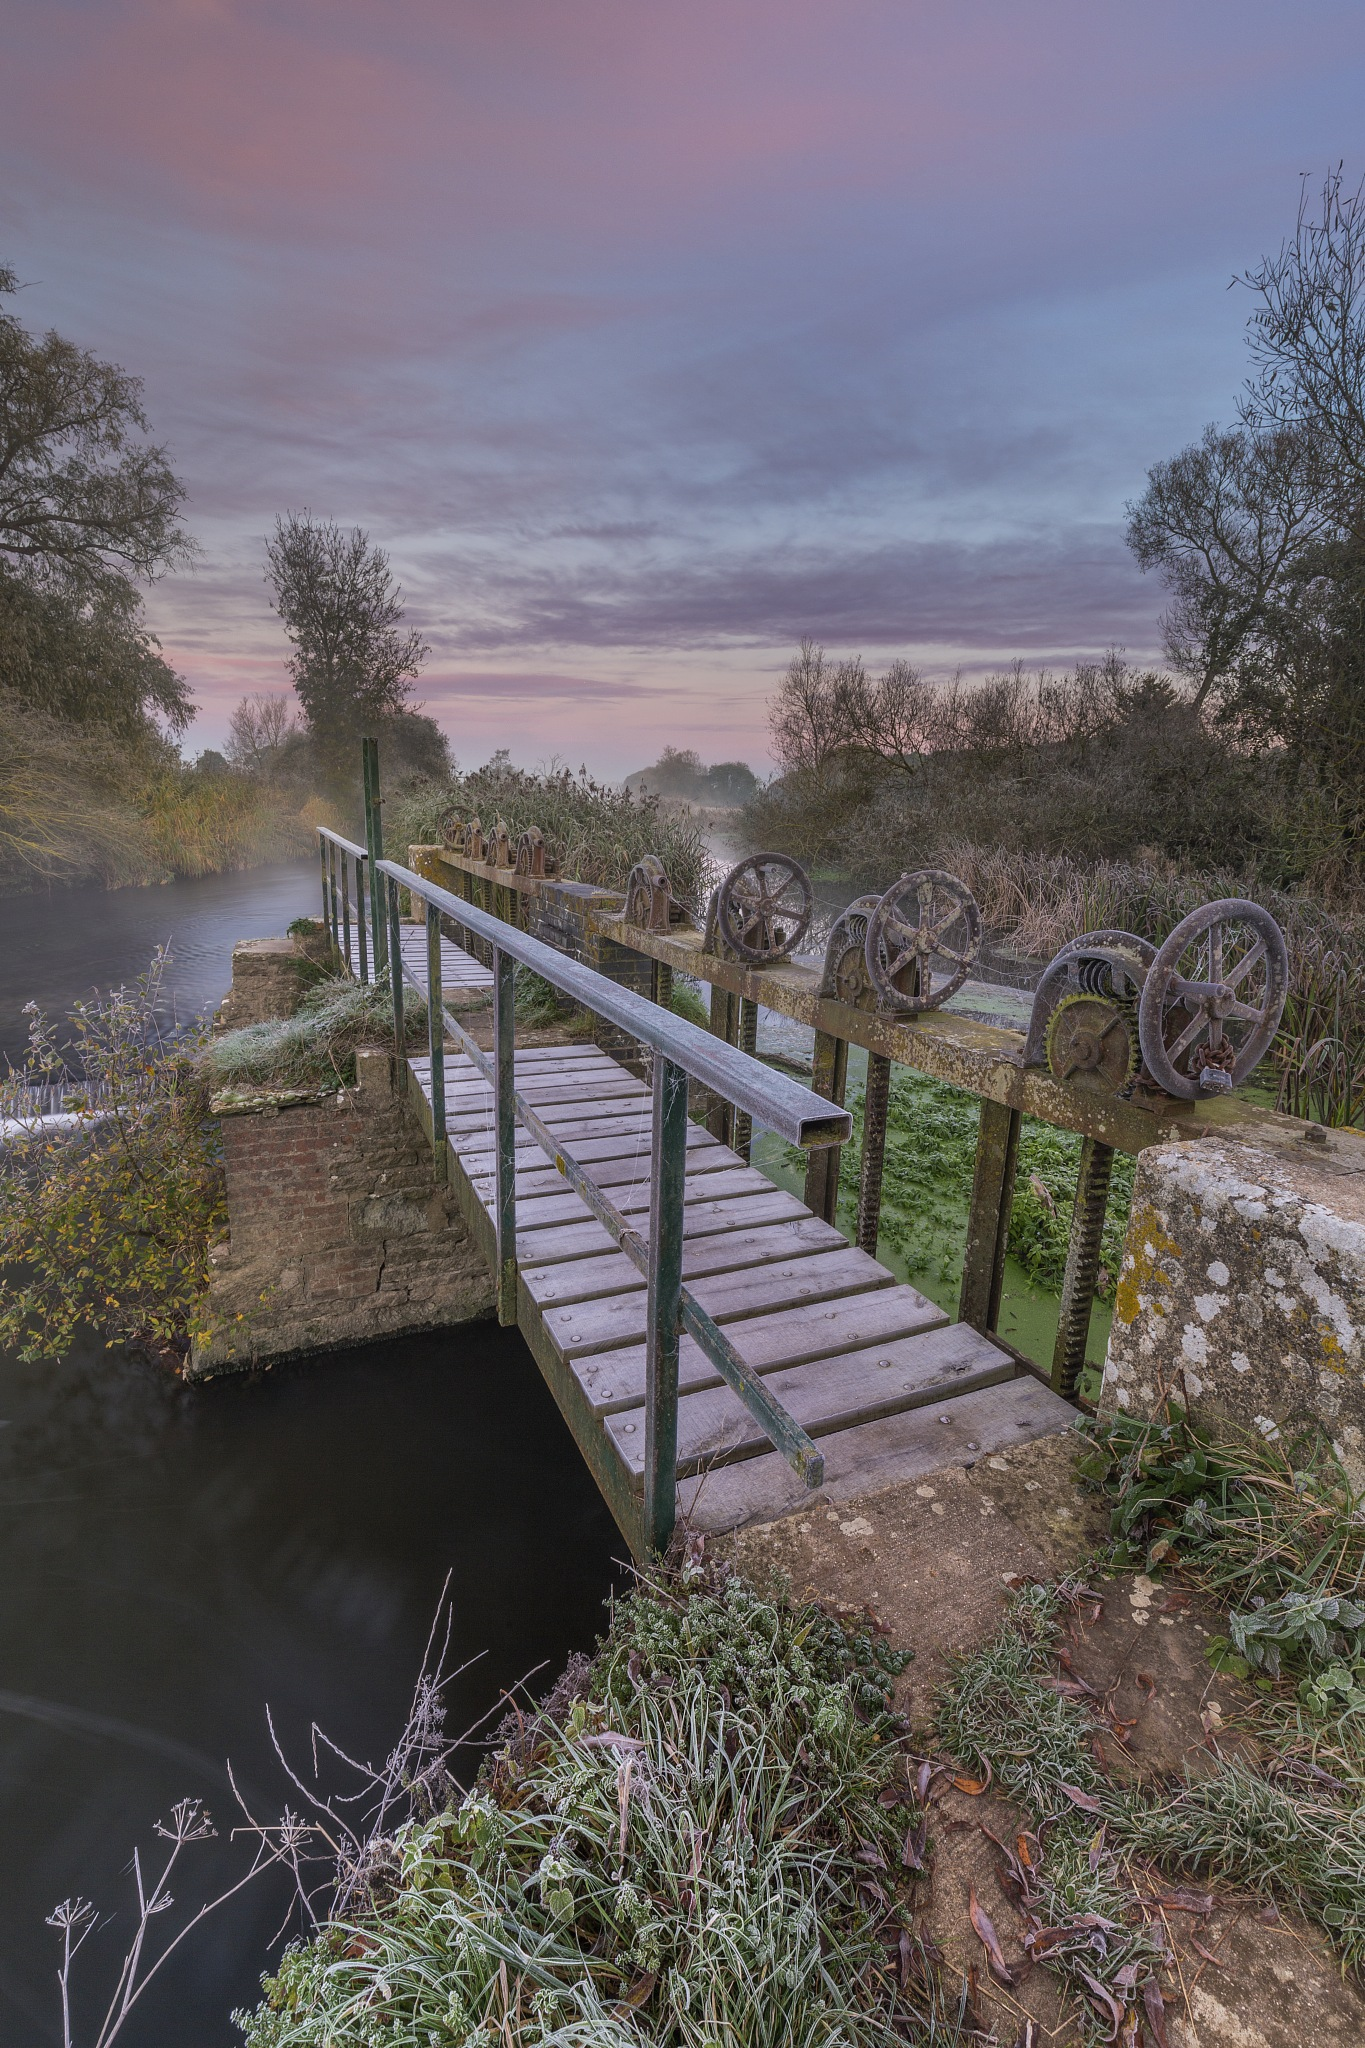 The Sluice Gate by Daniel Wretham Photography